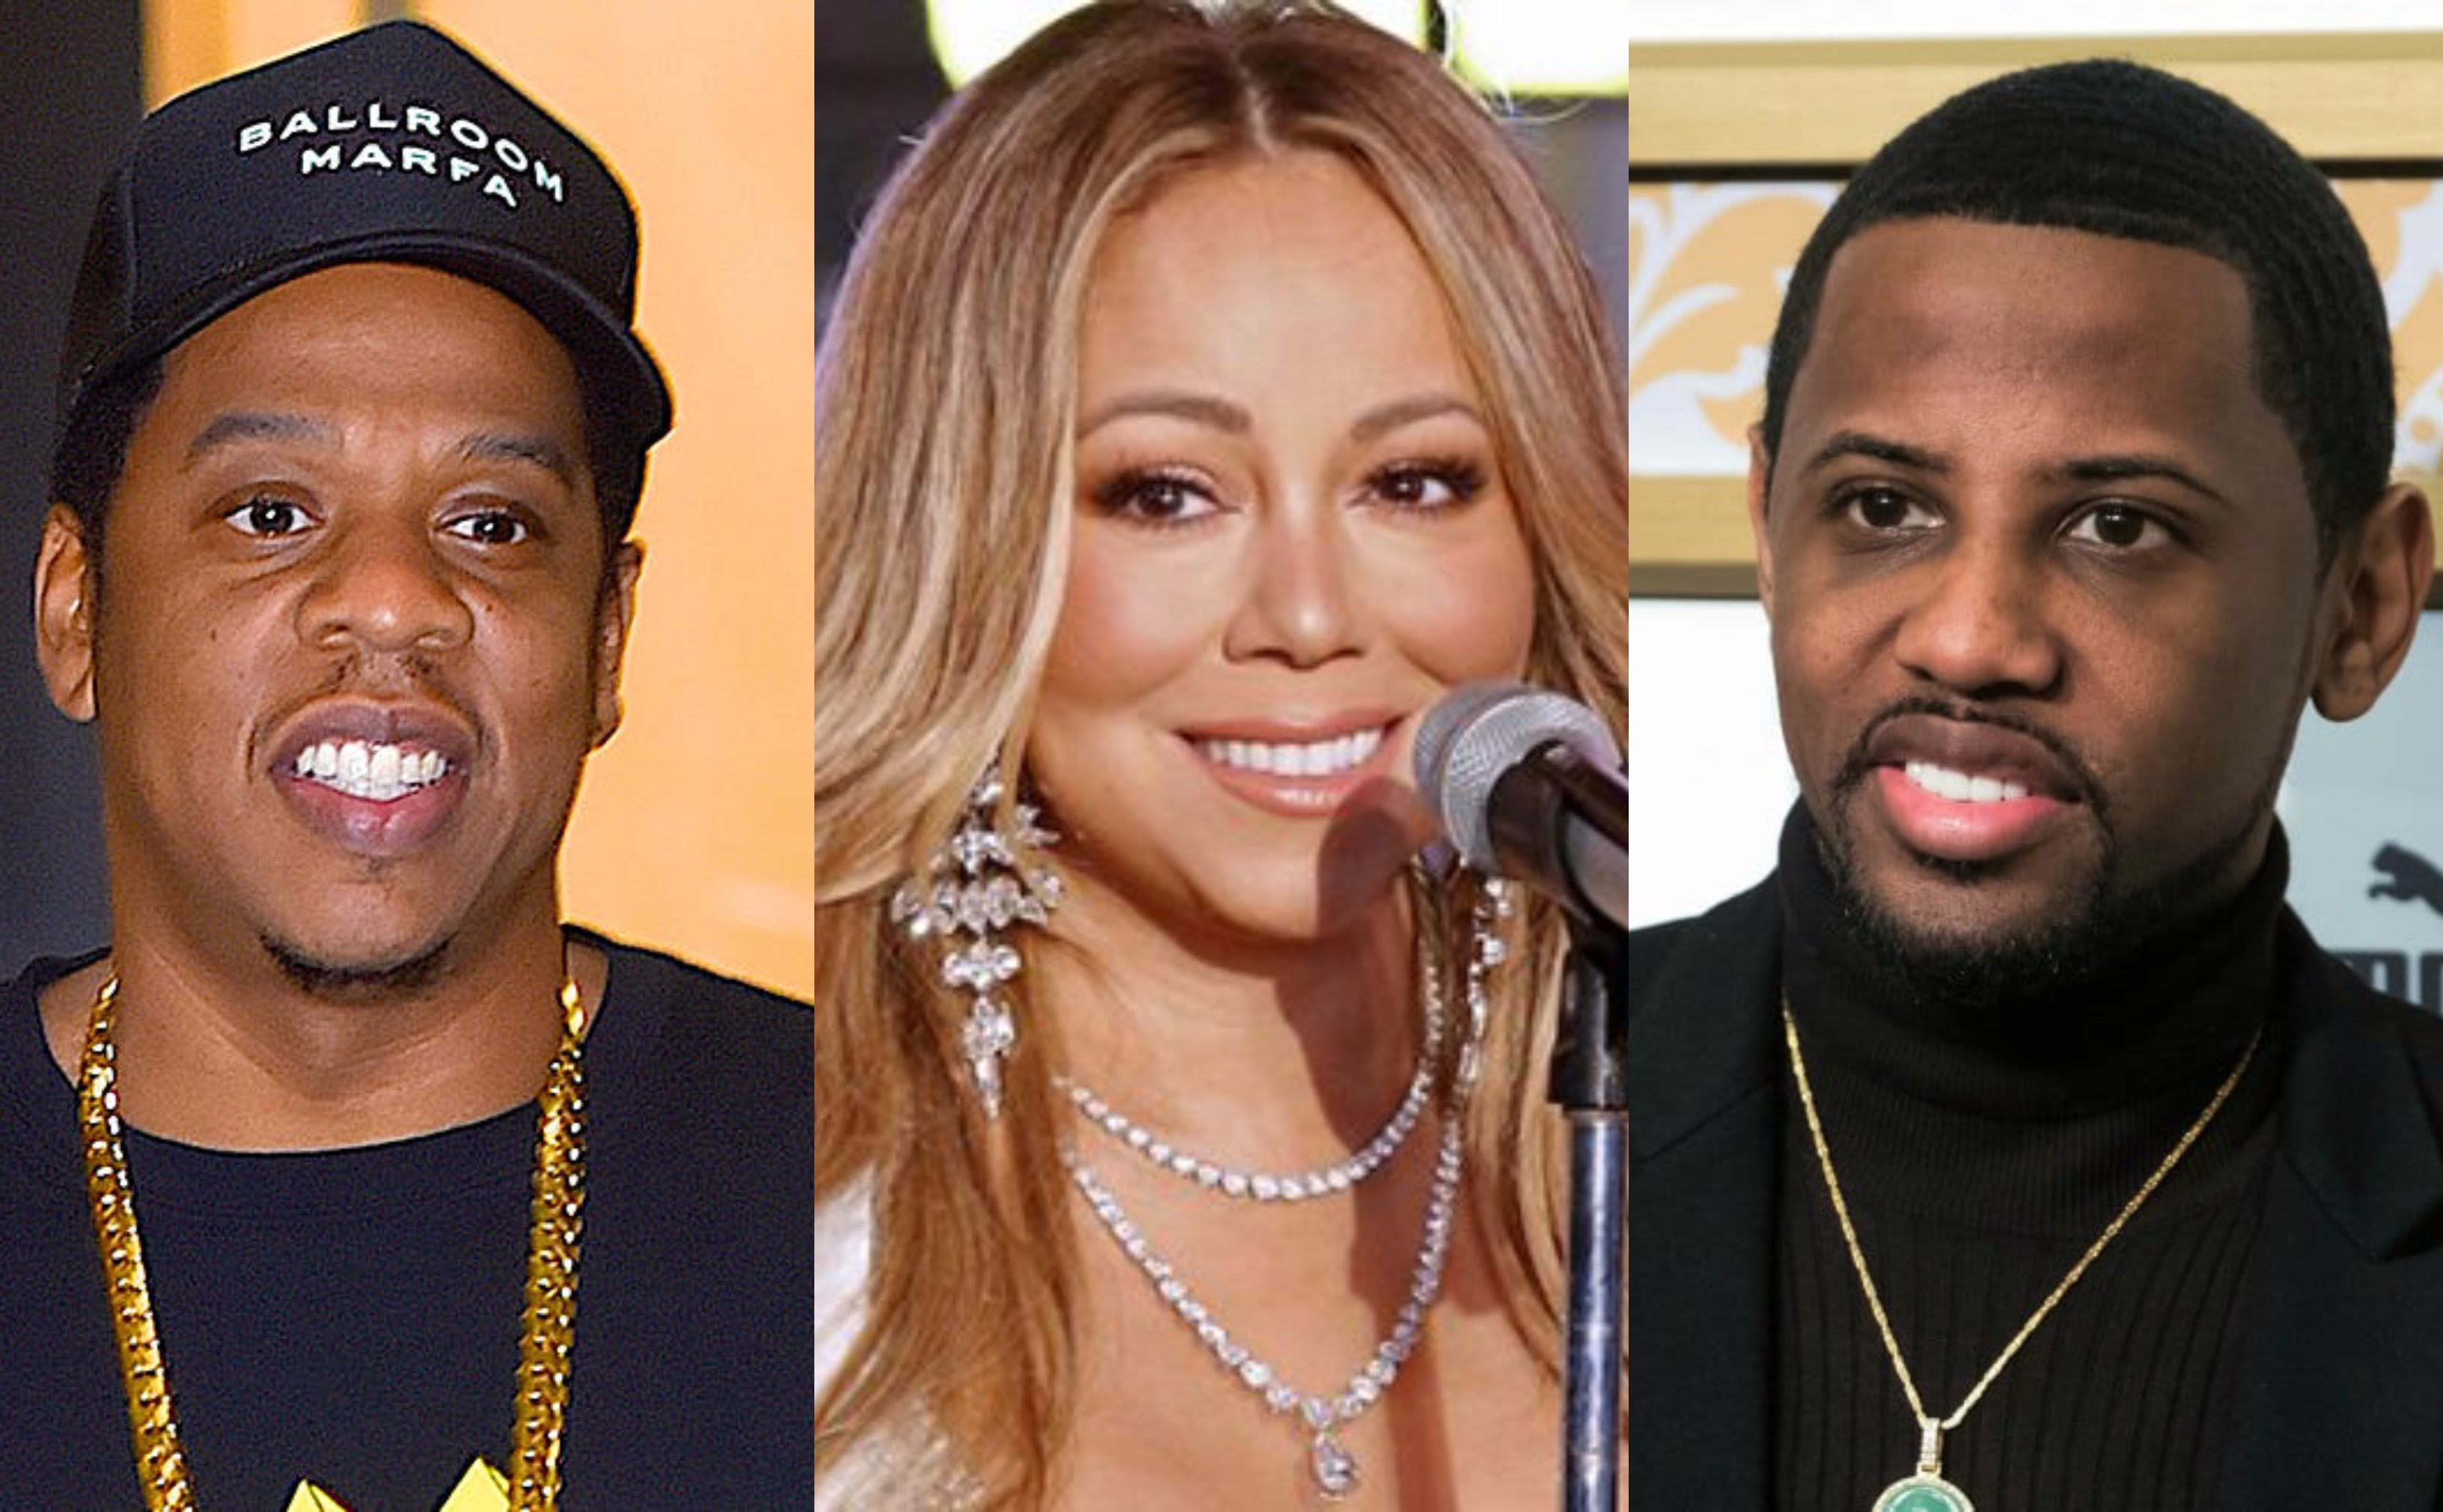 The Connection Between 9/11 & Mariah Carey, JAY-Z, and Fabolous